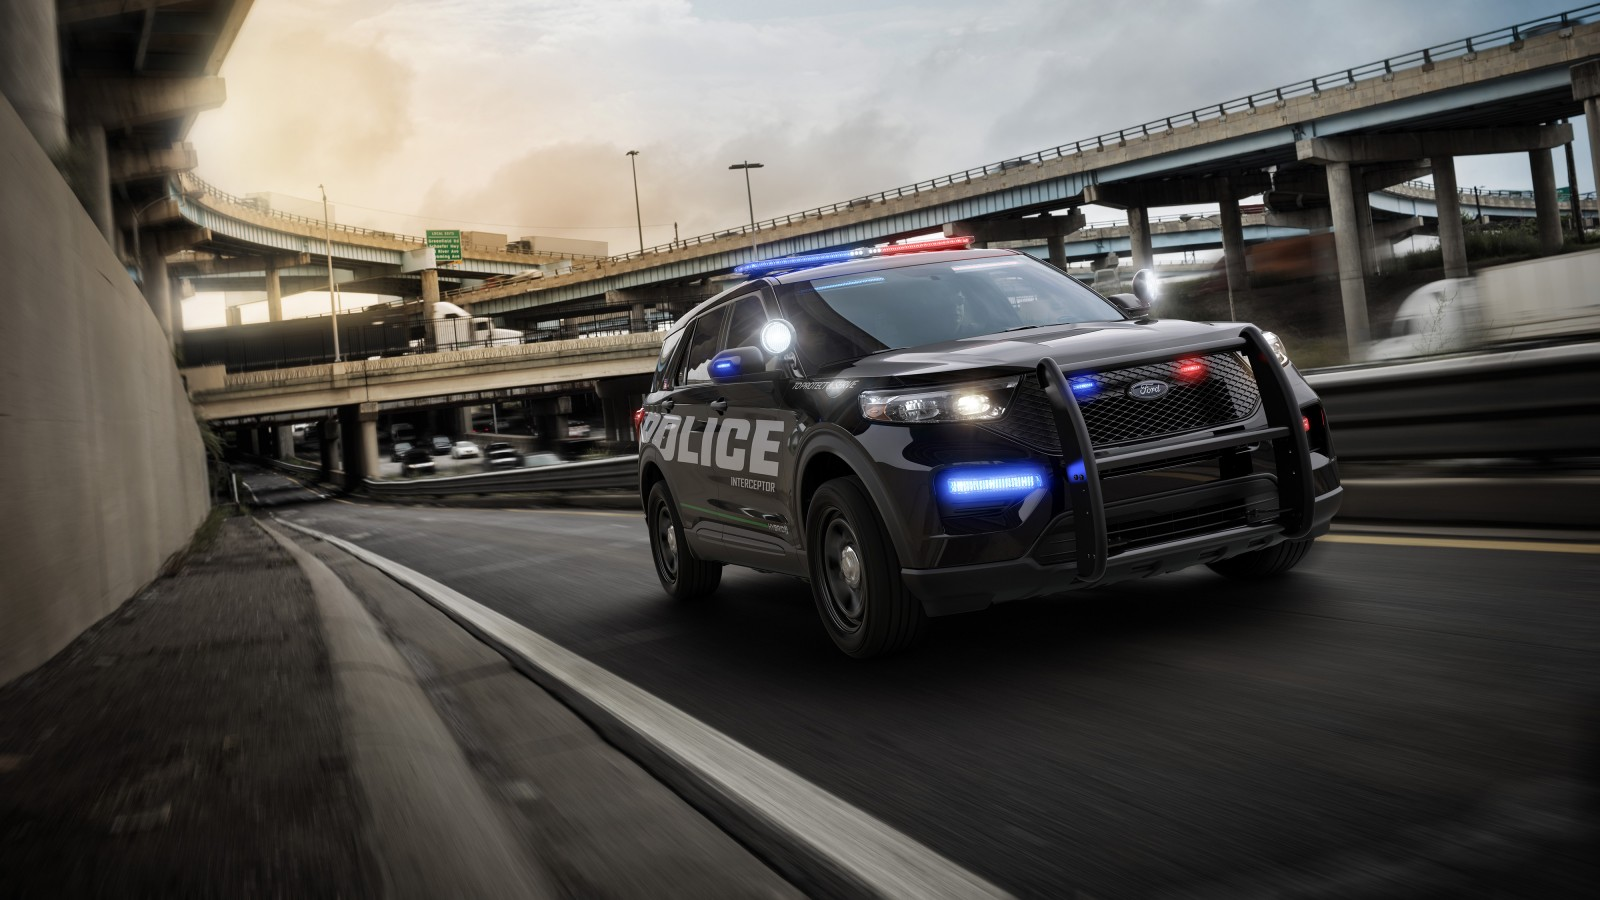 2020 Ford Police Interceptor Utility 4K Wallpaper | HD Car Wallpapers | ID #11814